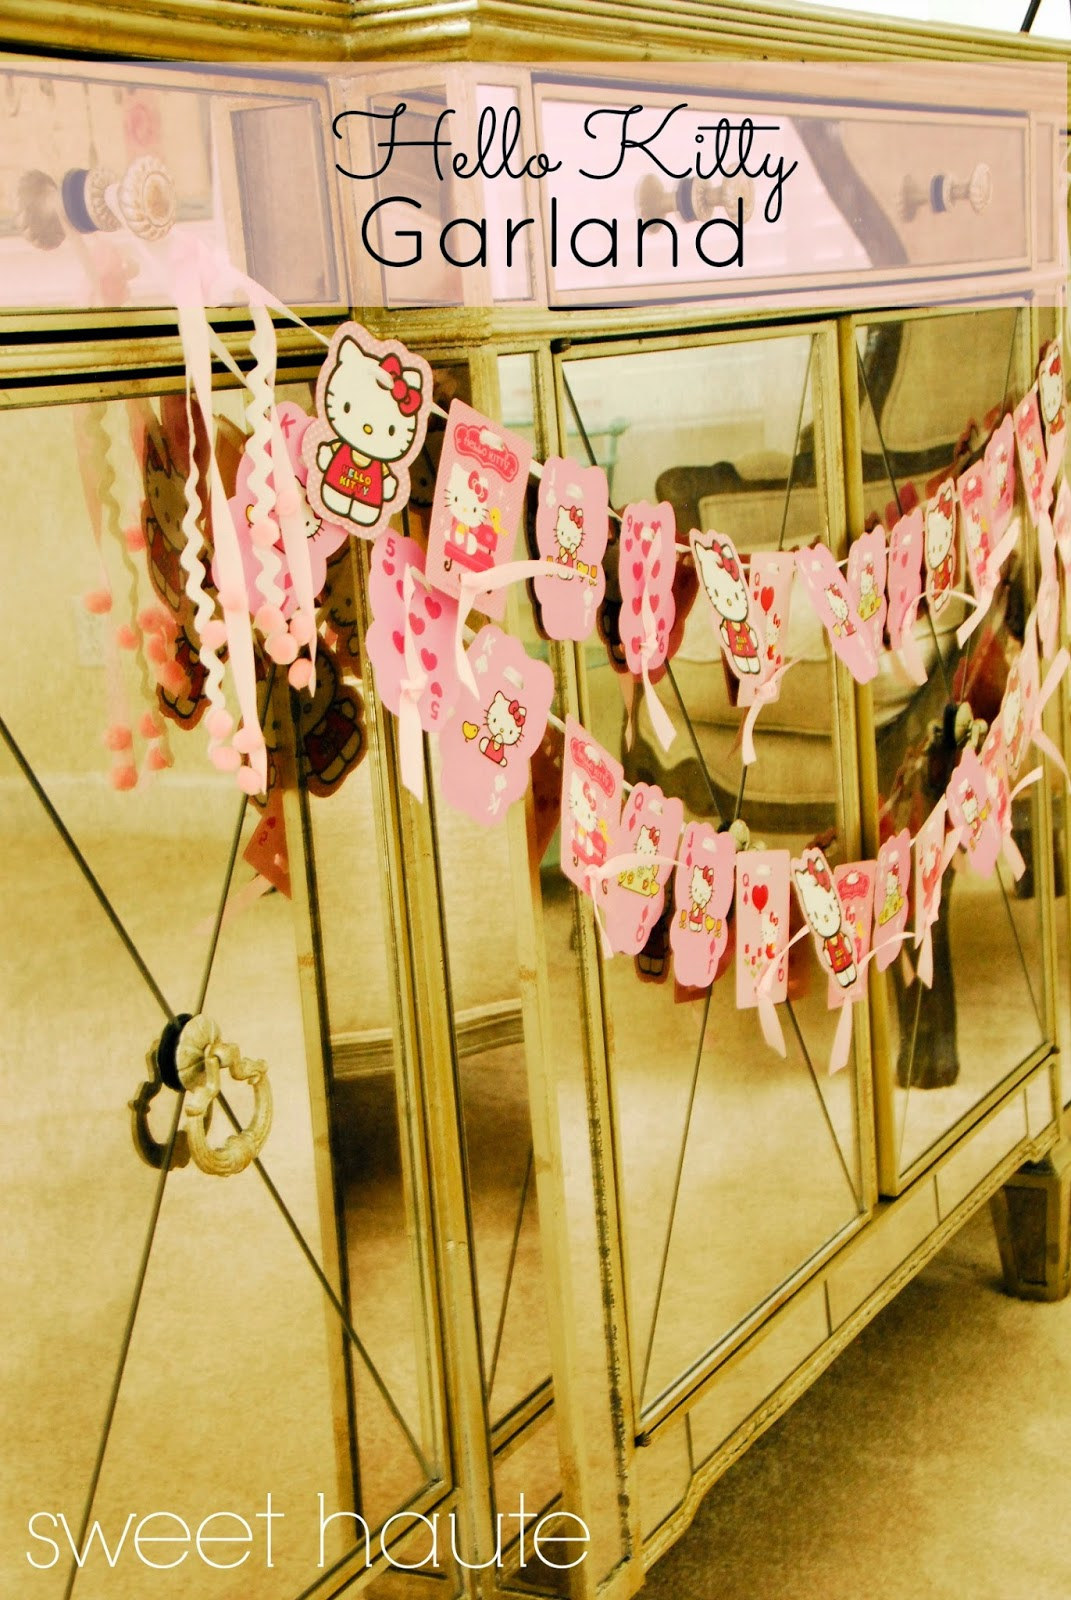 http://sweethaute.blogspot.com/2014/04/hello-kitty-garland-tutorial-sweet.html